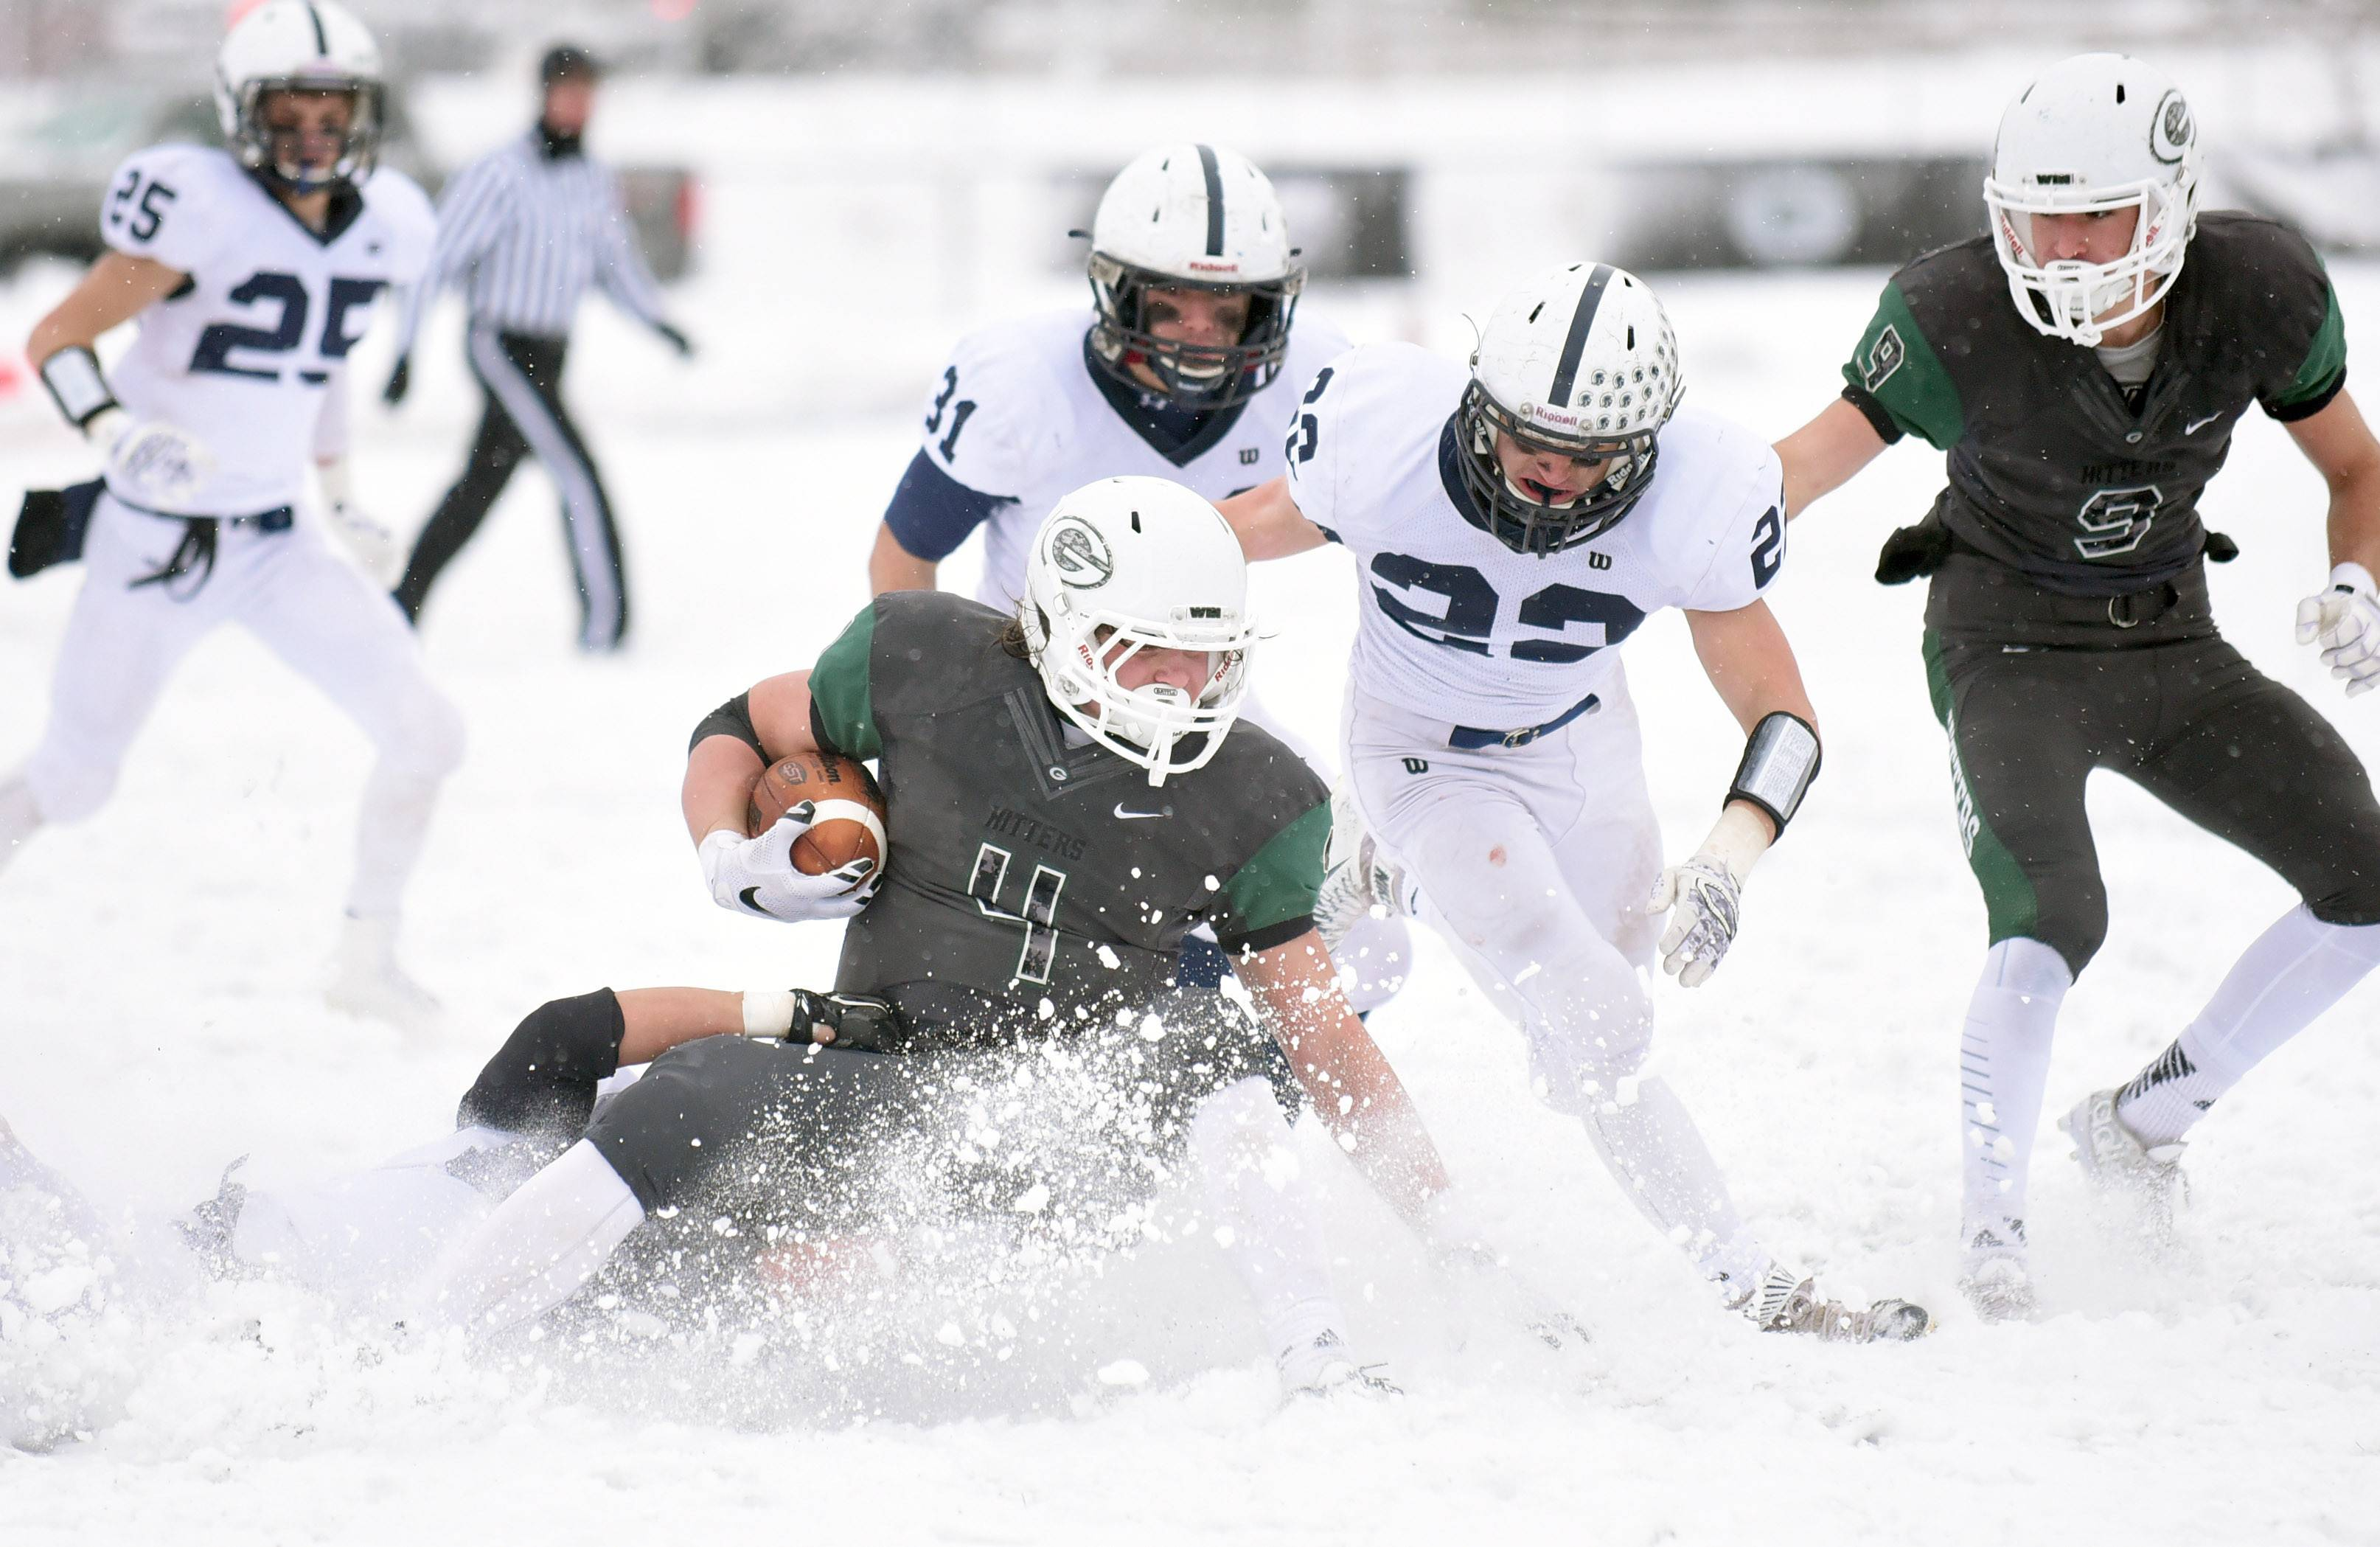 Cary-Grove's Erik Norberg (hidden in the snow spray) takes down Glenbard West's Sam Brodner in the fourth quarter of the Class 7A semifinal at Glenbard South High School in Glen Ellyn Saturday.